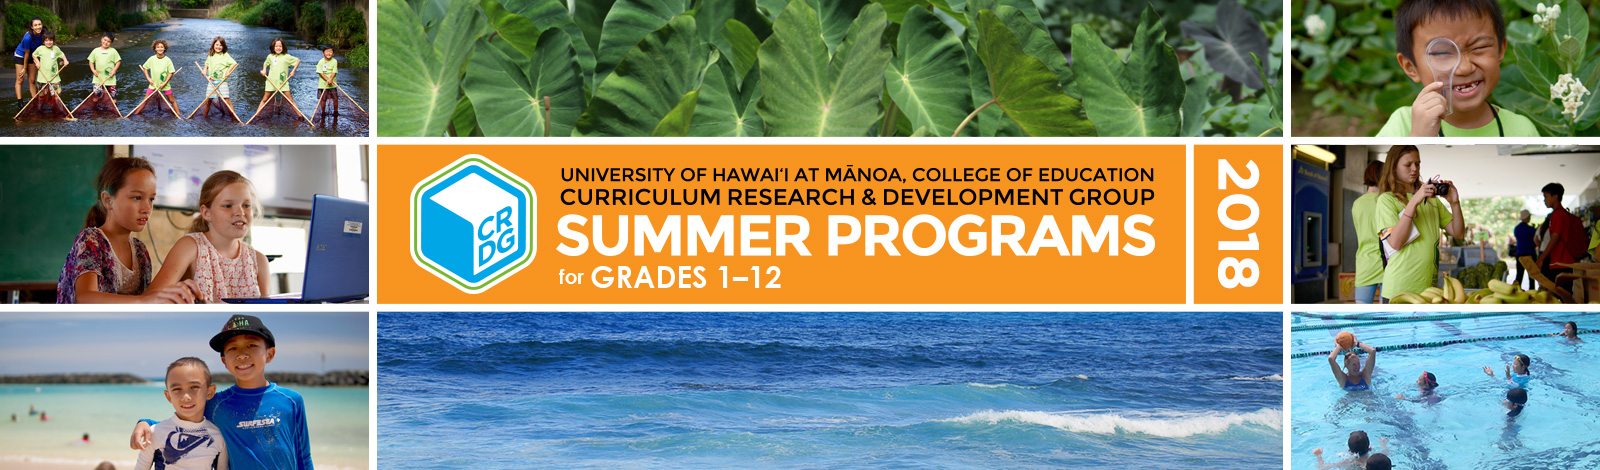 summer programs header graphic